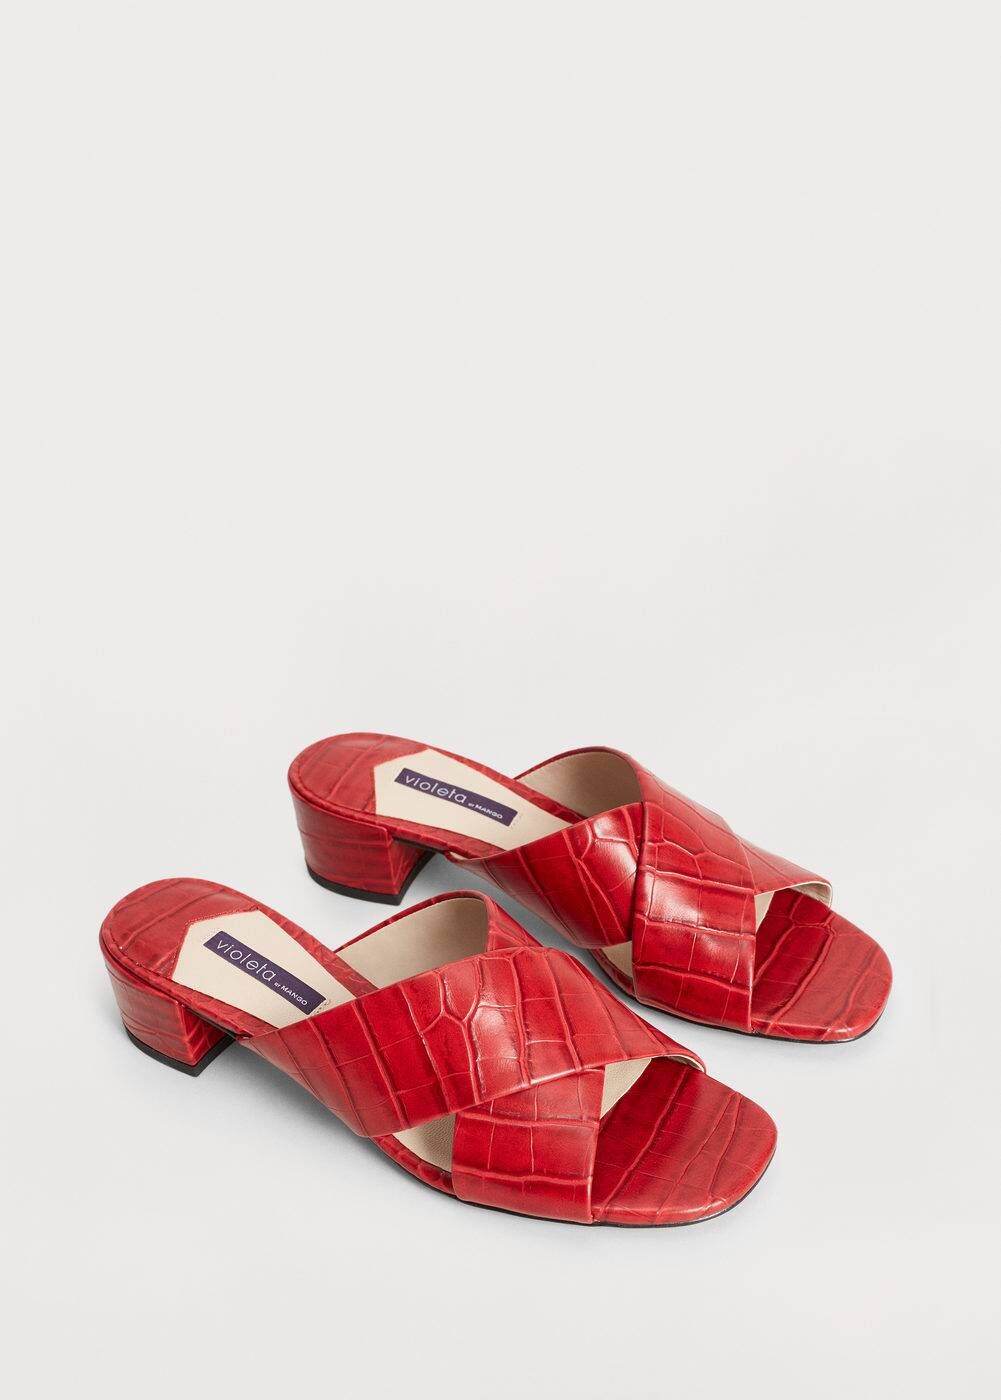 Croc-effect crisscross sandals | VIOLETA BY MANGO